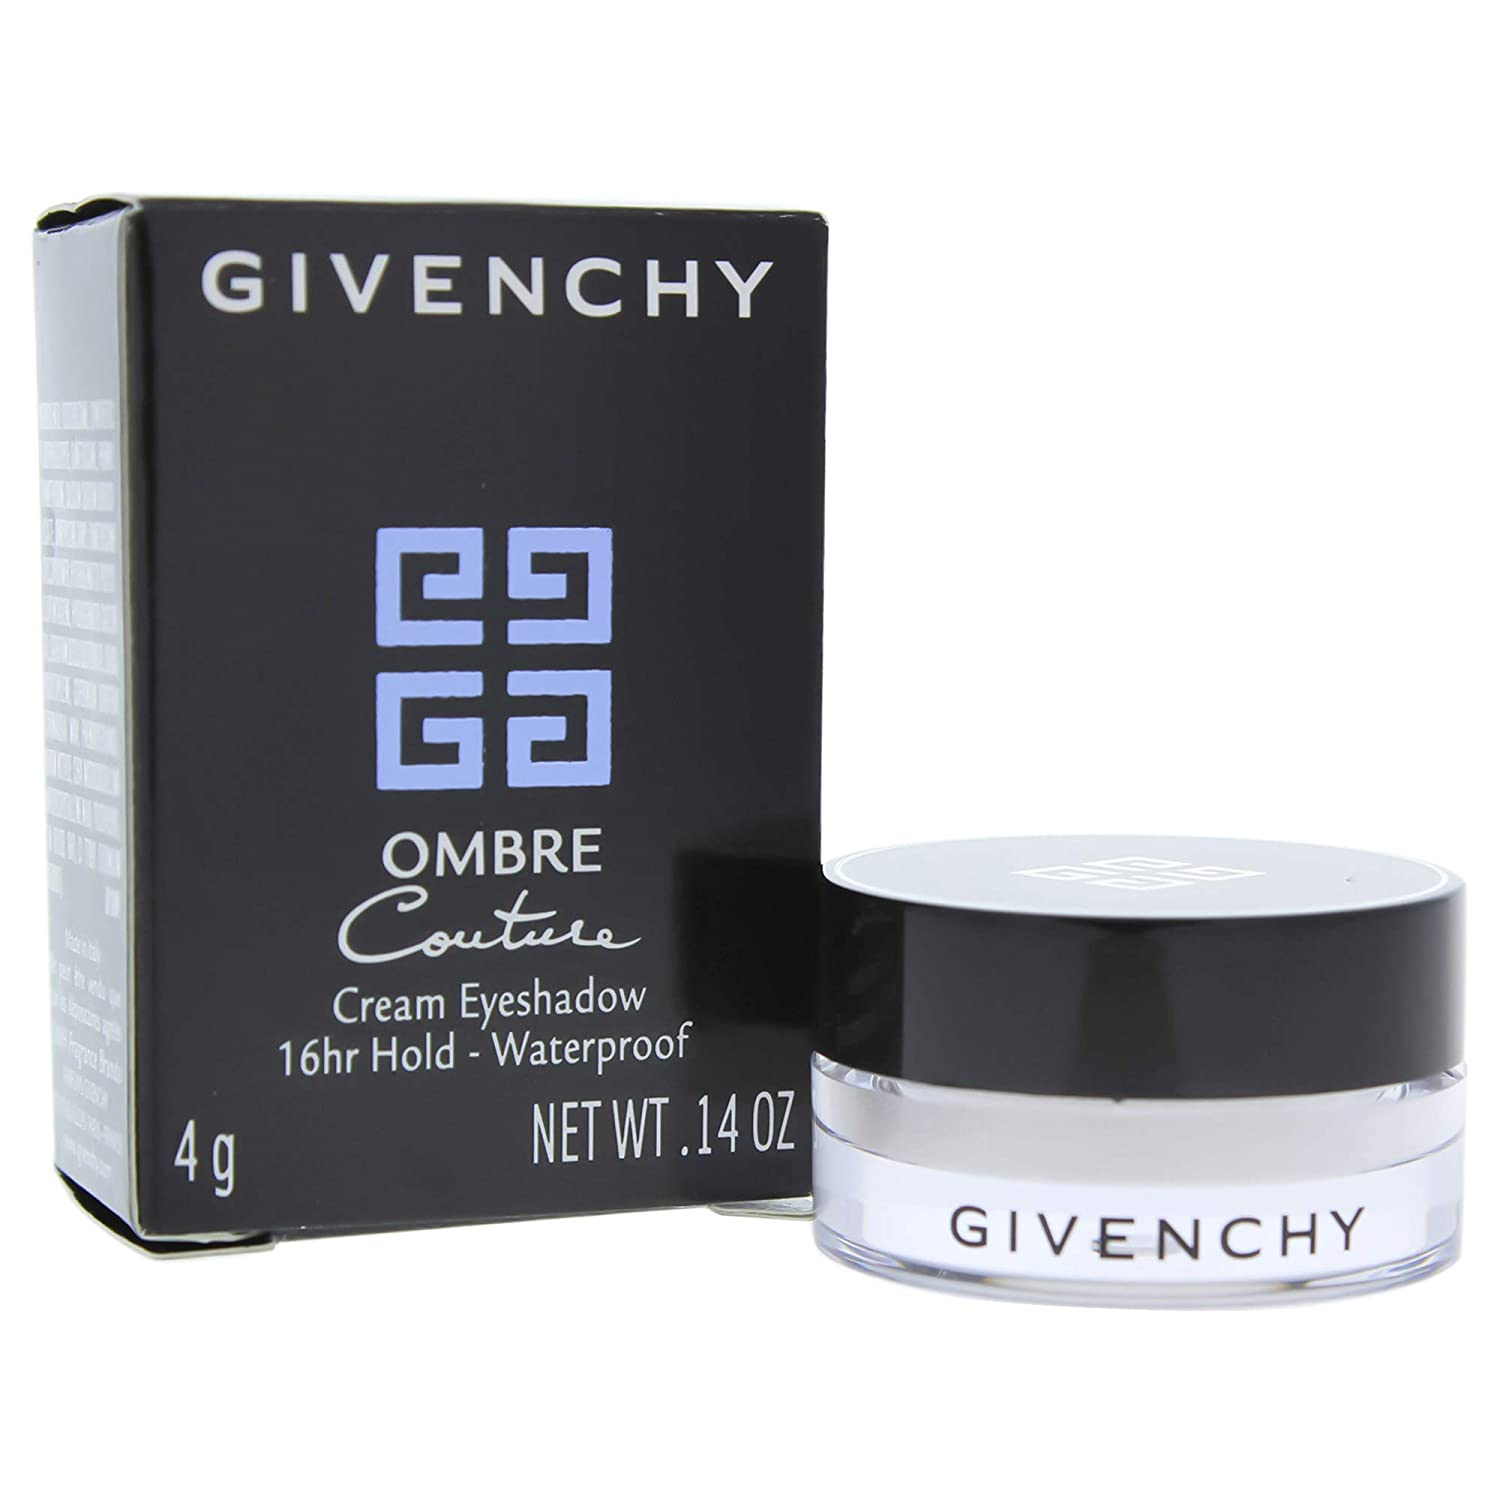 Givenchy Ombre Couture Cream